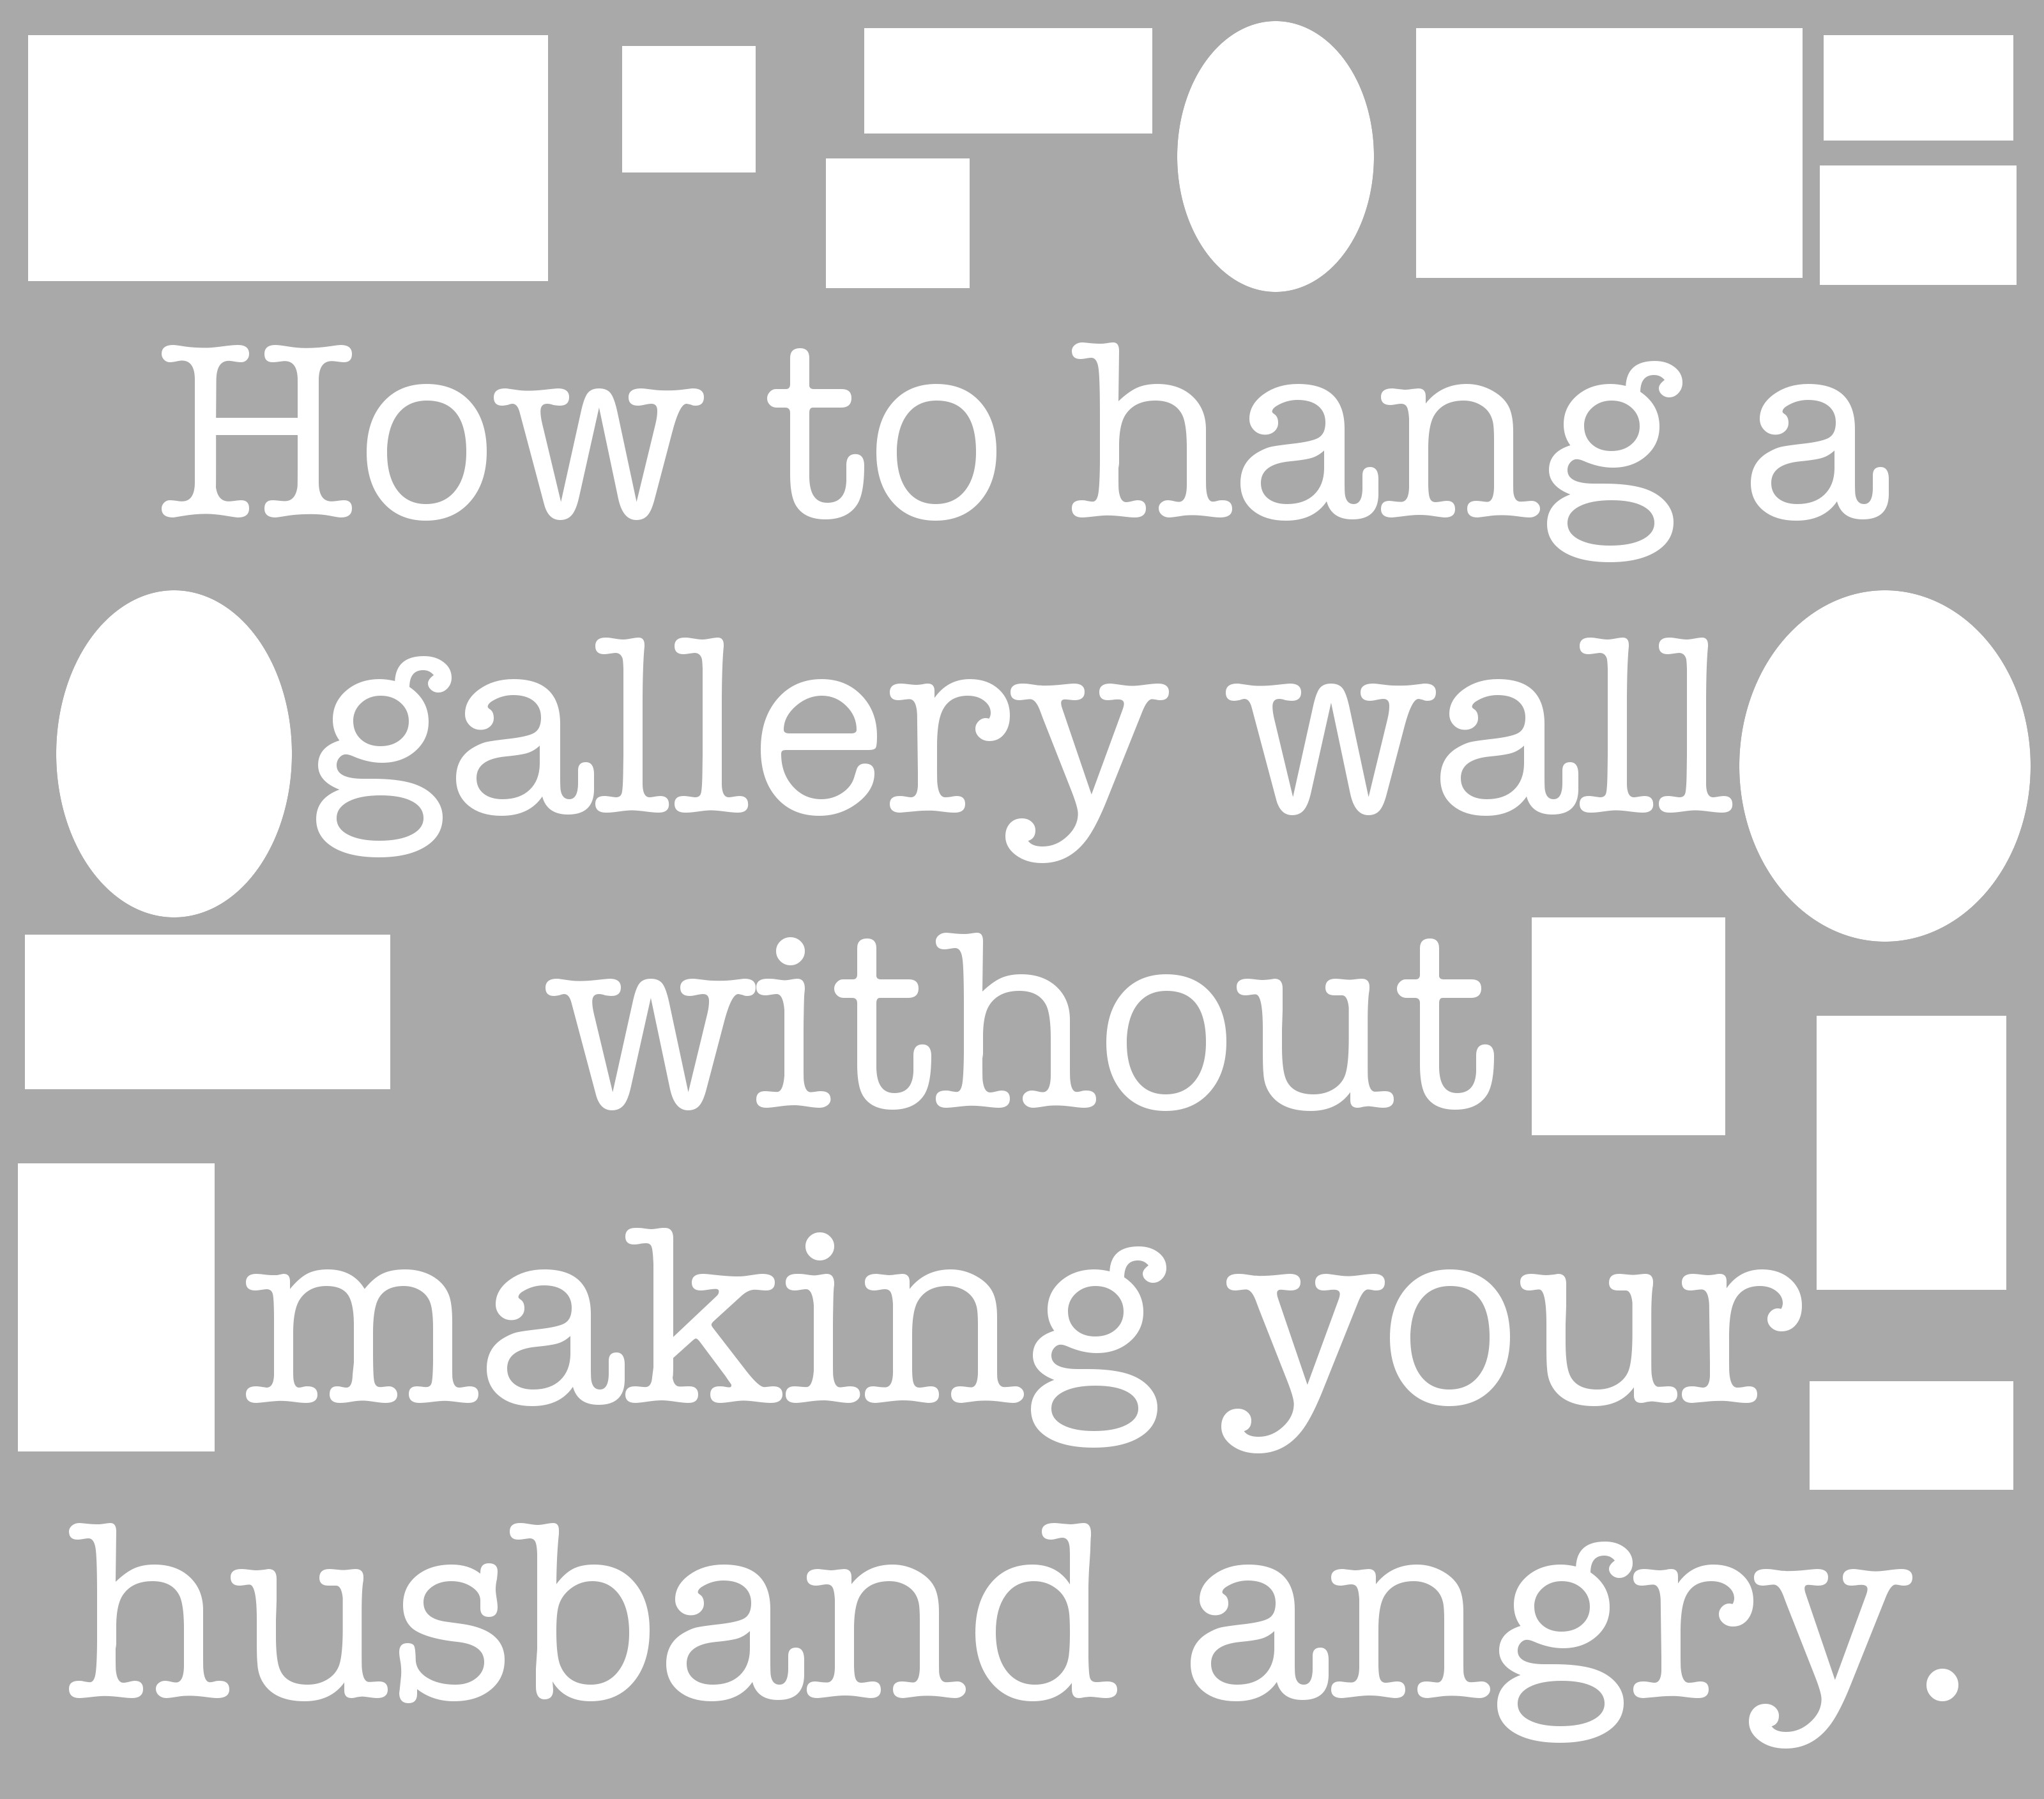 how to hang a gallery wall without making your husband angry amy allender dot com. Black Bedroom Furniture Sets. Home Design Ideas